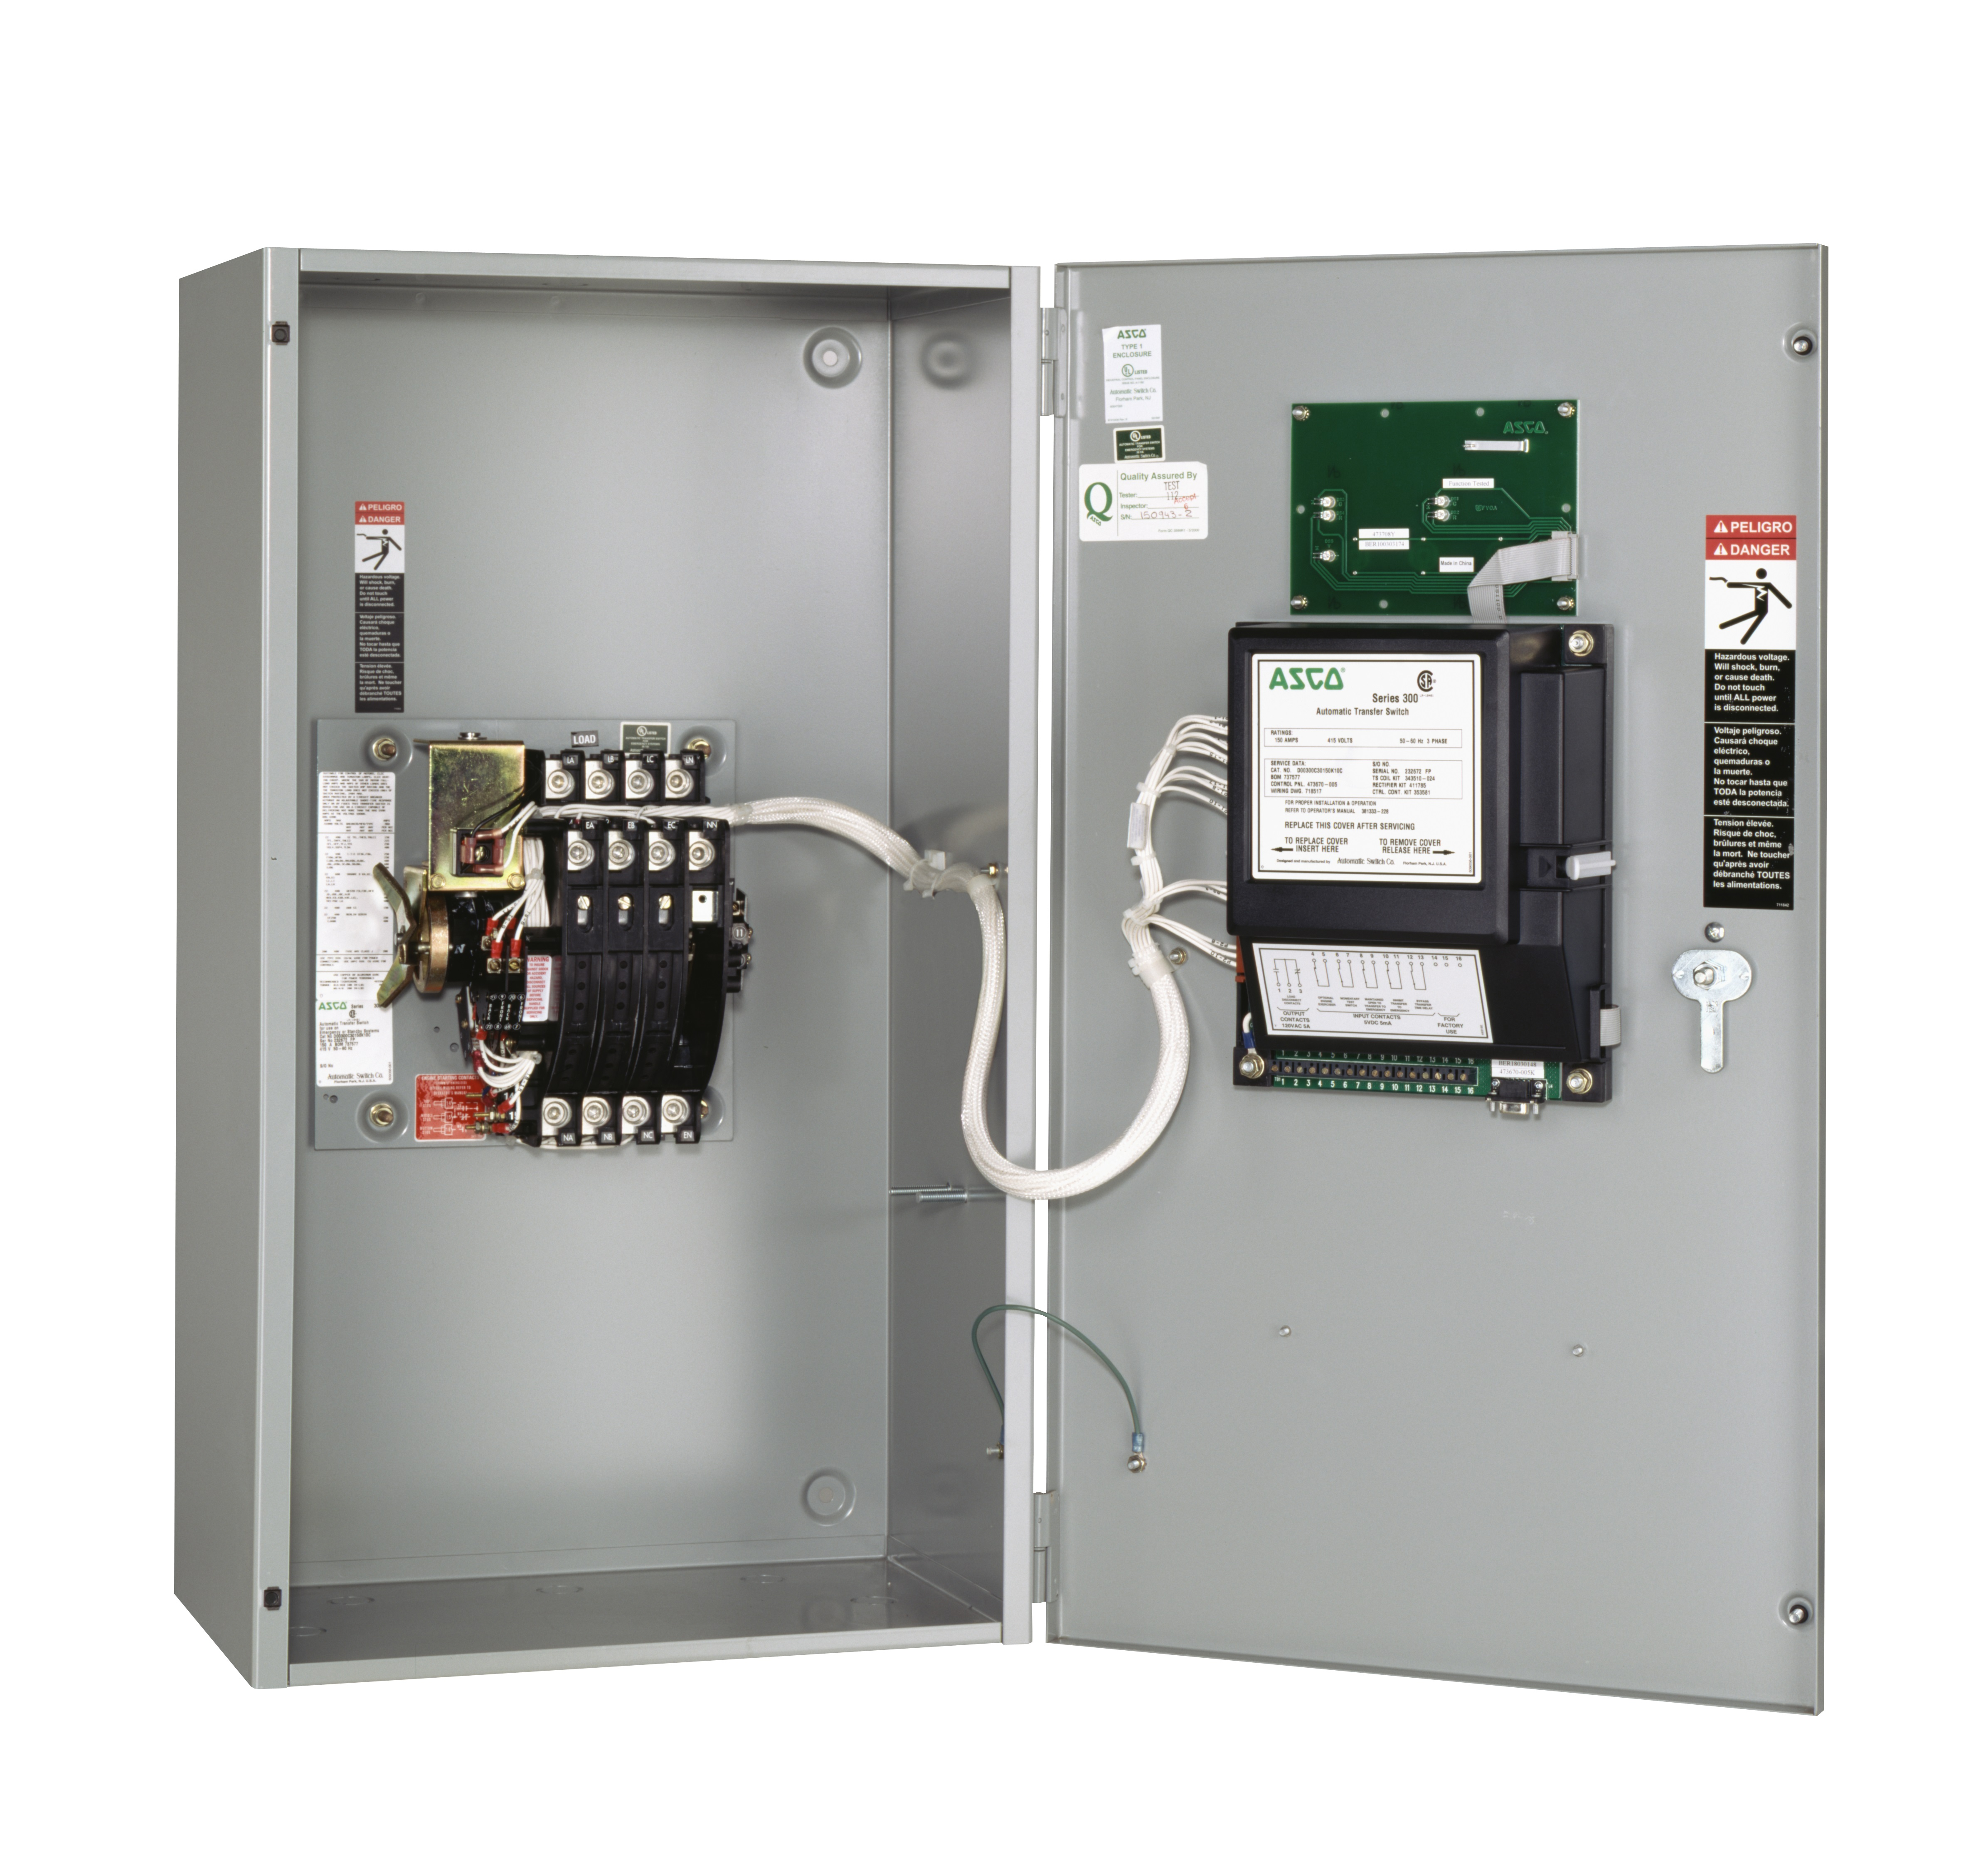 260 Amp Asco Automatic Transfer Switch - 600 Volt